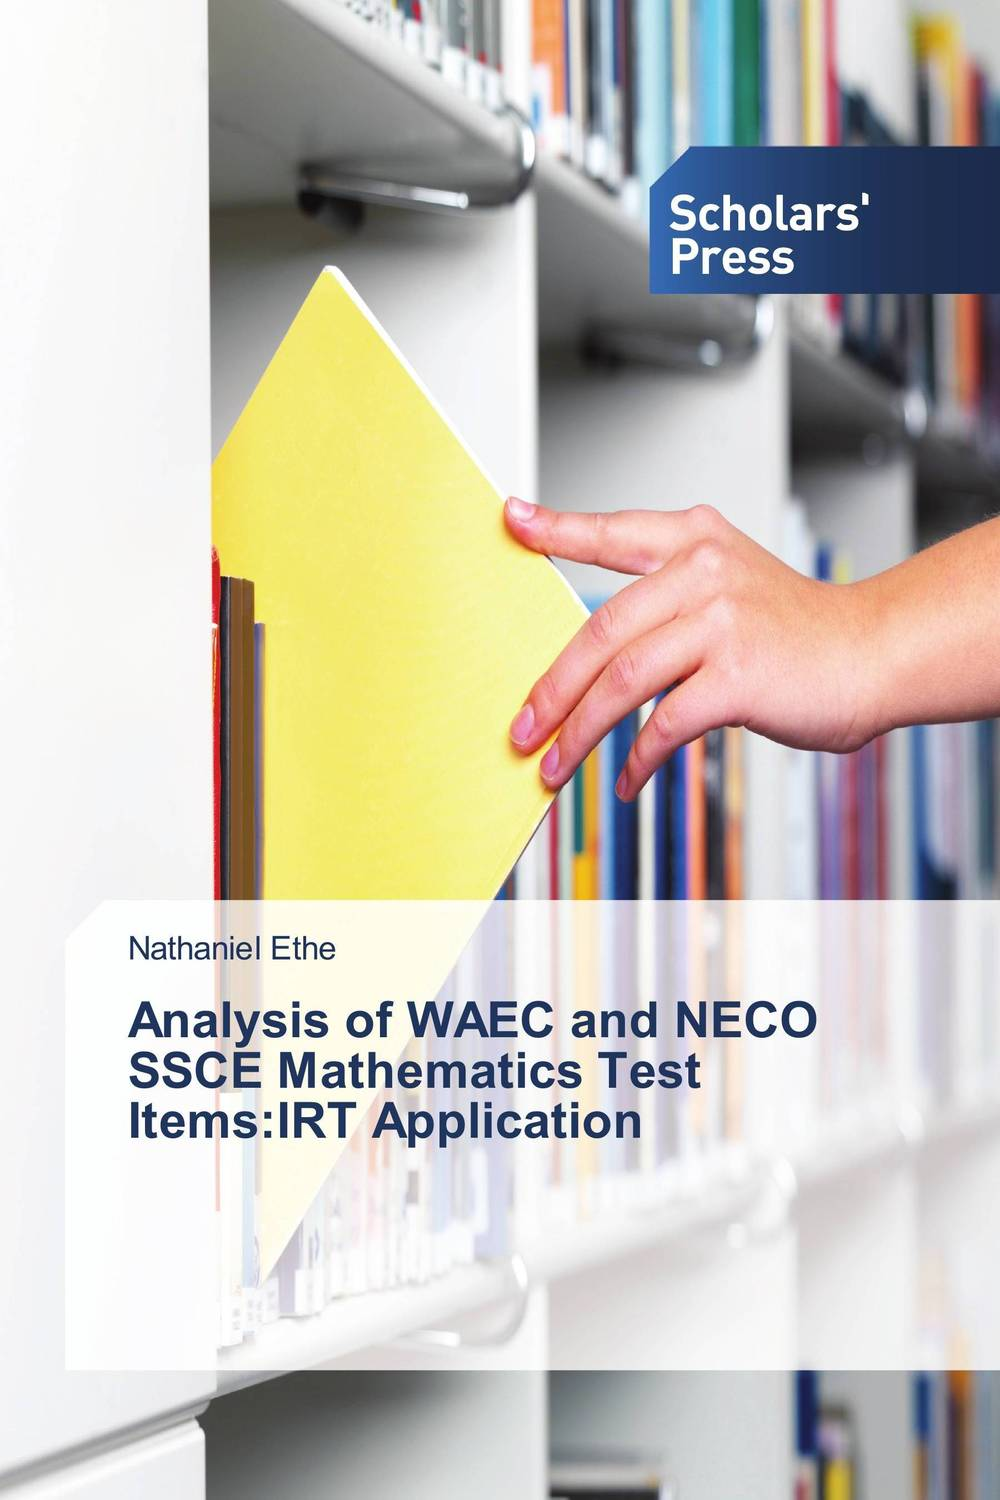 Analysis of WAEC and NECO SSCE Mathematics Test Items:IRT Application link for tractor parts or other items not found in the store covers the items as agreed